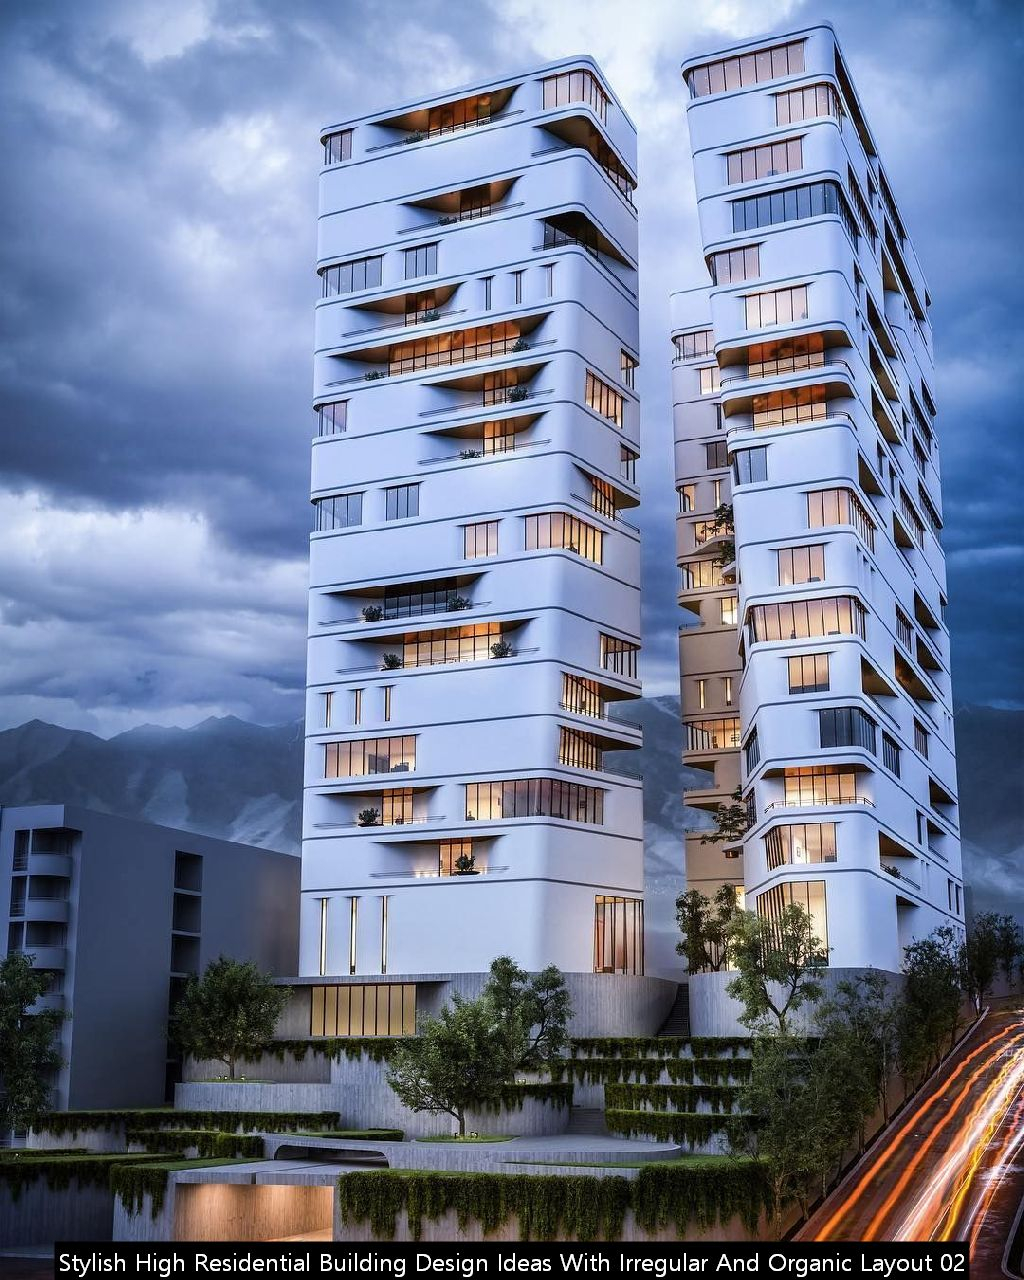 Stylish High Residential Building Design Ideas With Irregular And Organic Layout 02